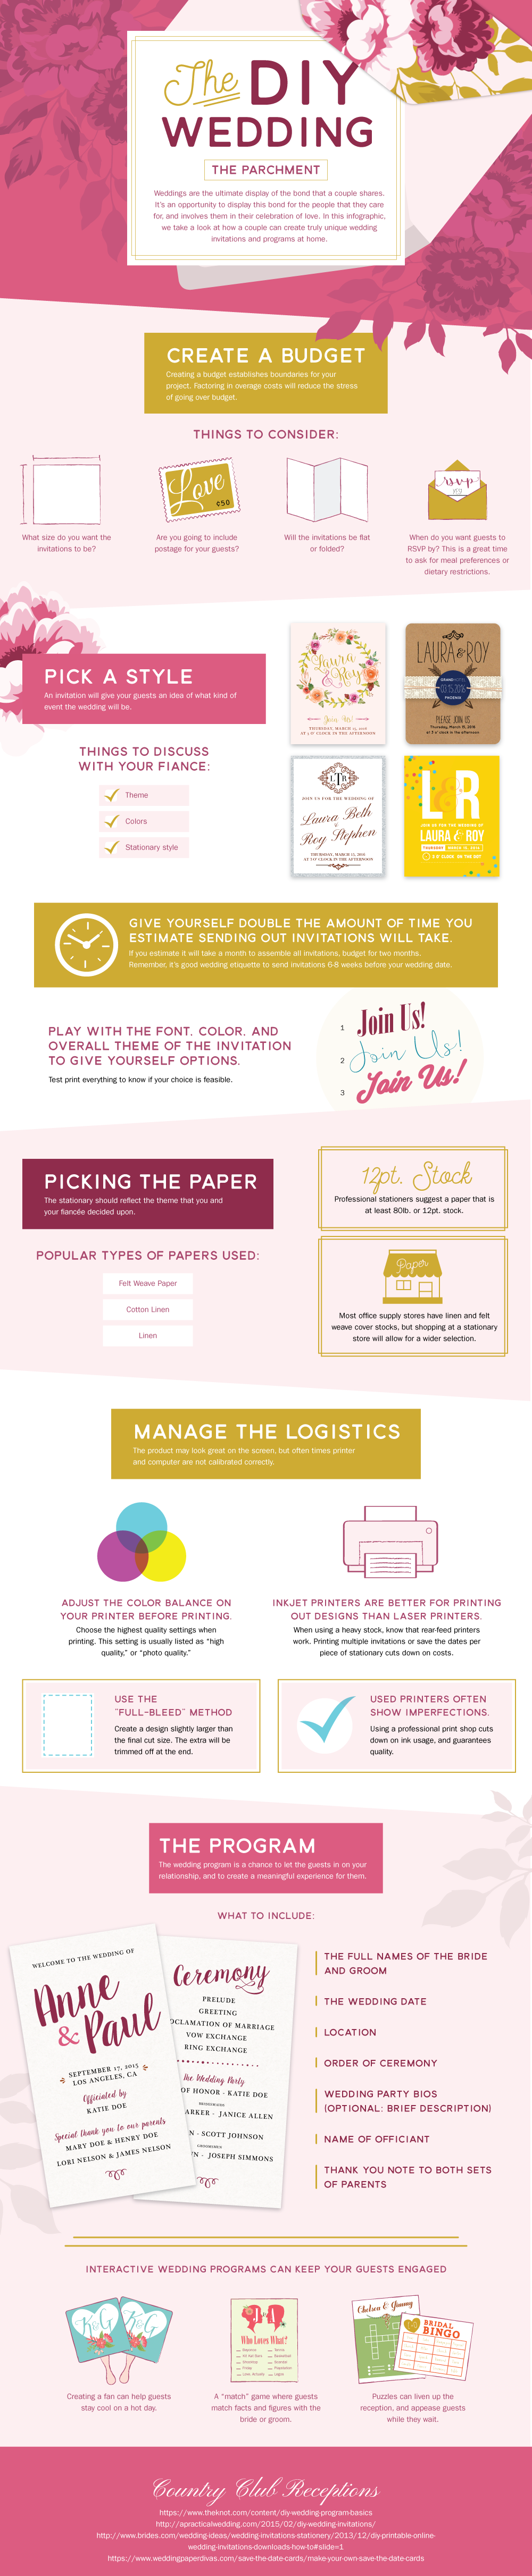 DIY Wedding Infographic